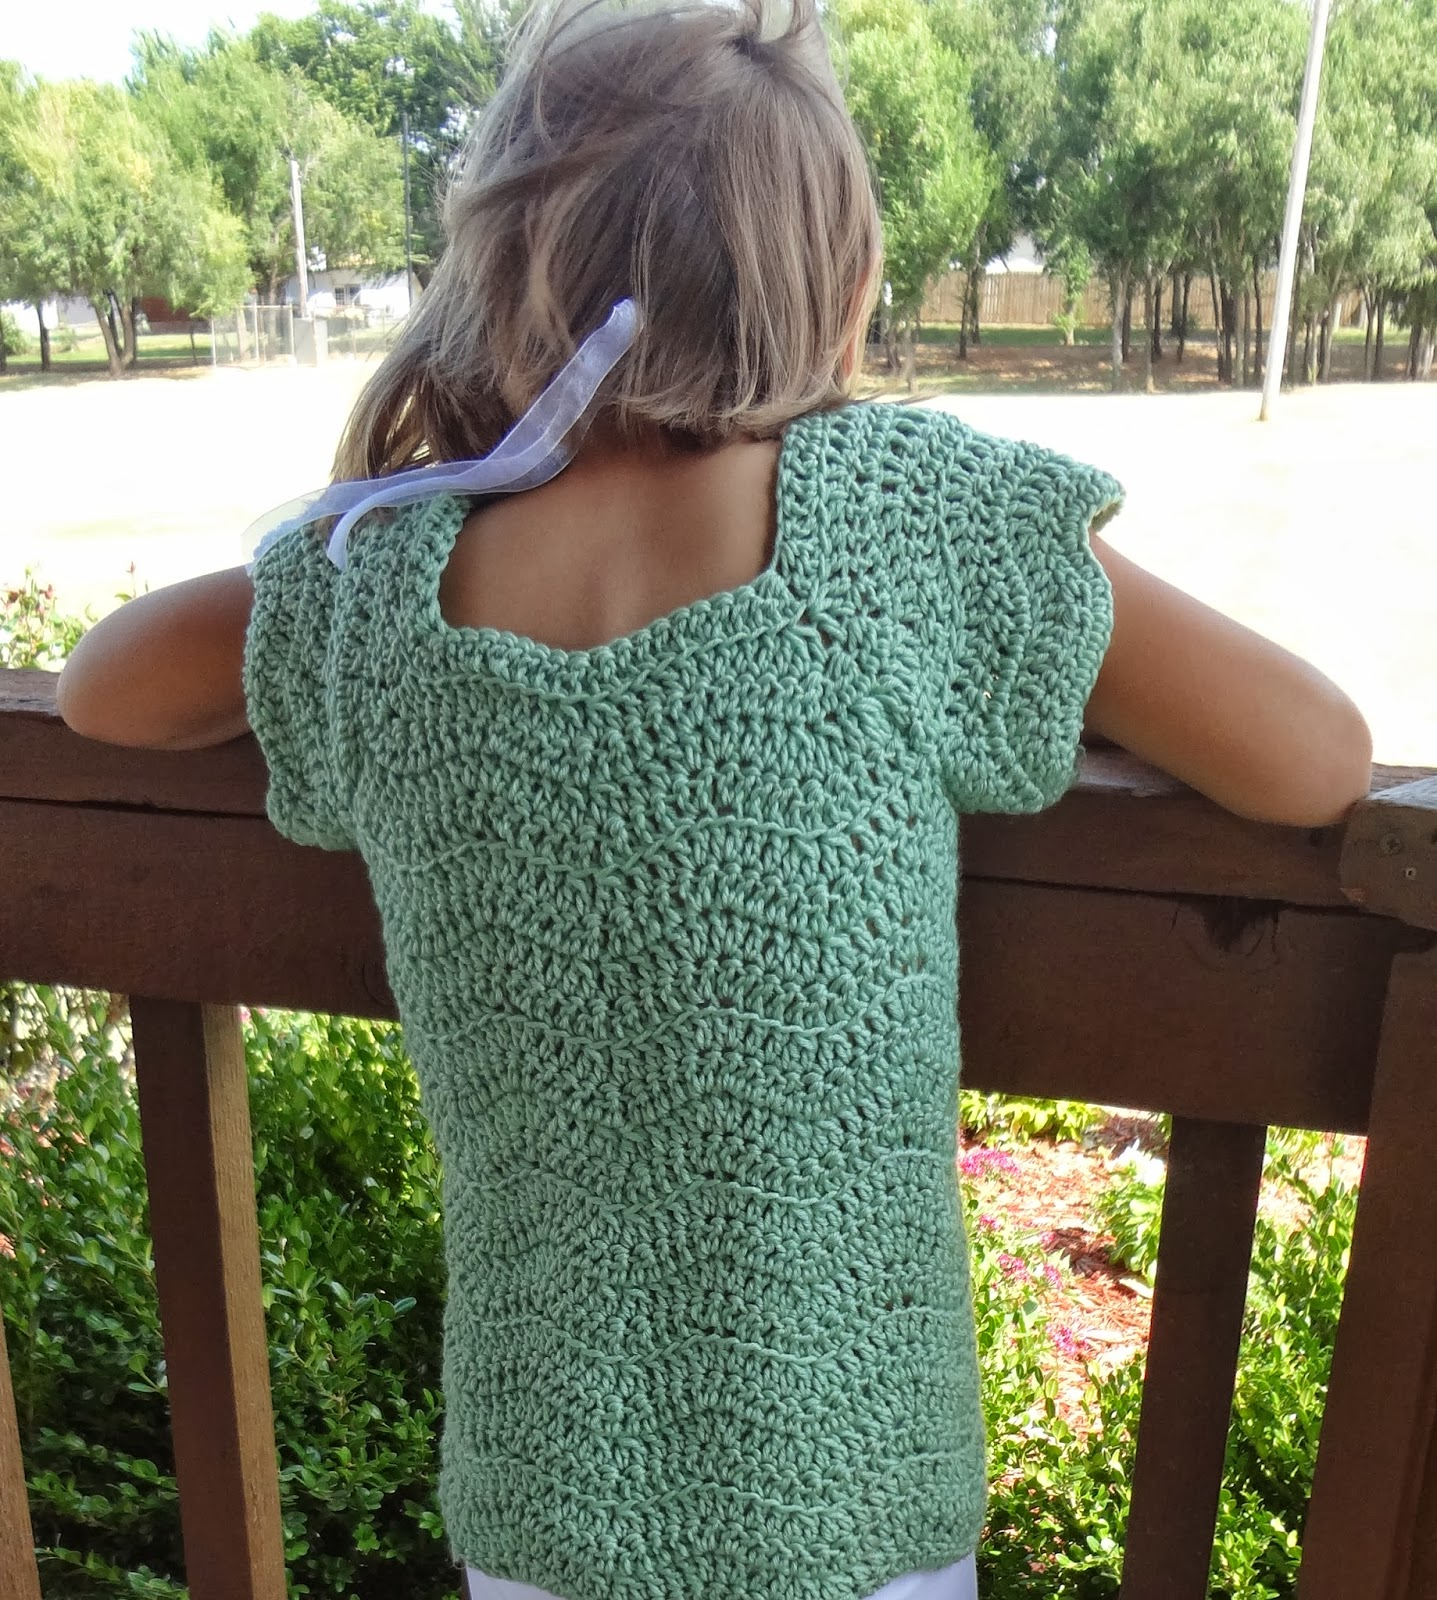 Girl wearing a ripple stitch crochet top with short sleeves standing at a rale in a gazebo. Crochet pattern from Banana Moon Studio.